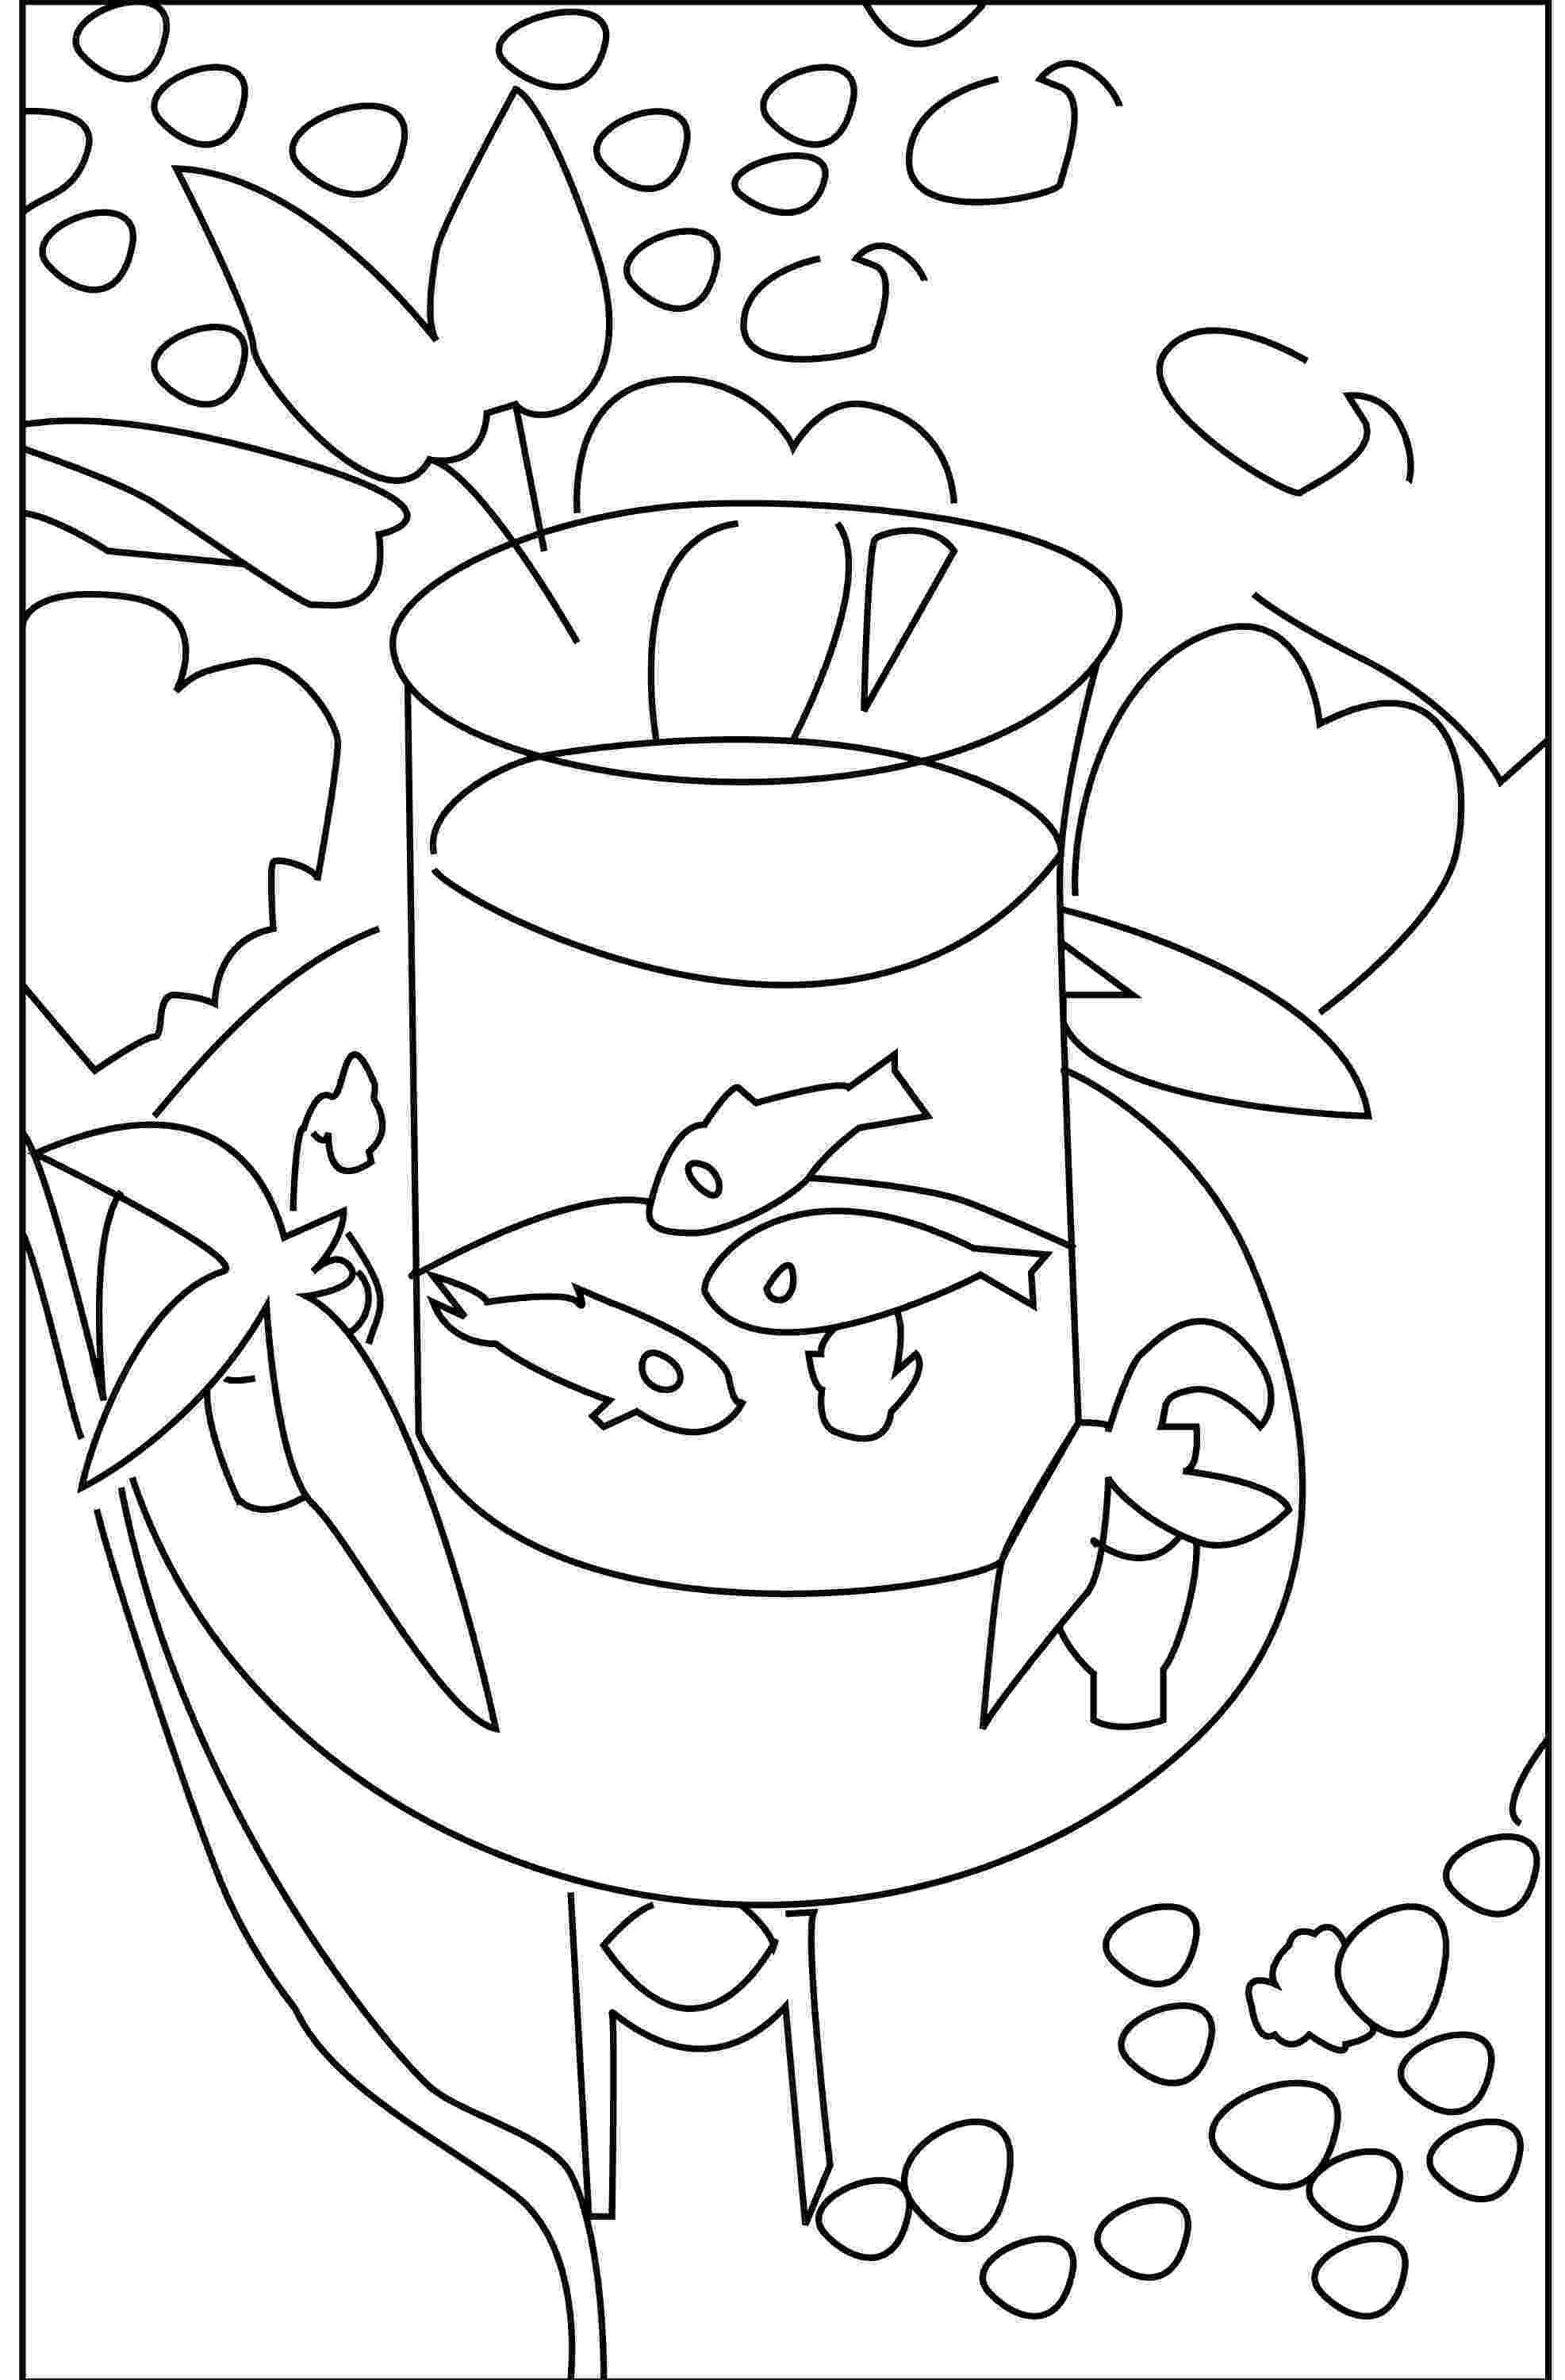 goldfish coloring page coloring book matisses gold fish neo decadent goldfish page coloring